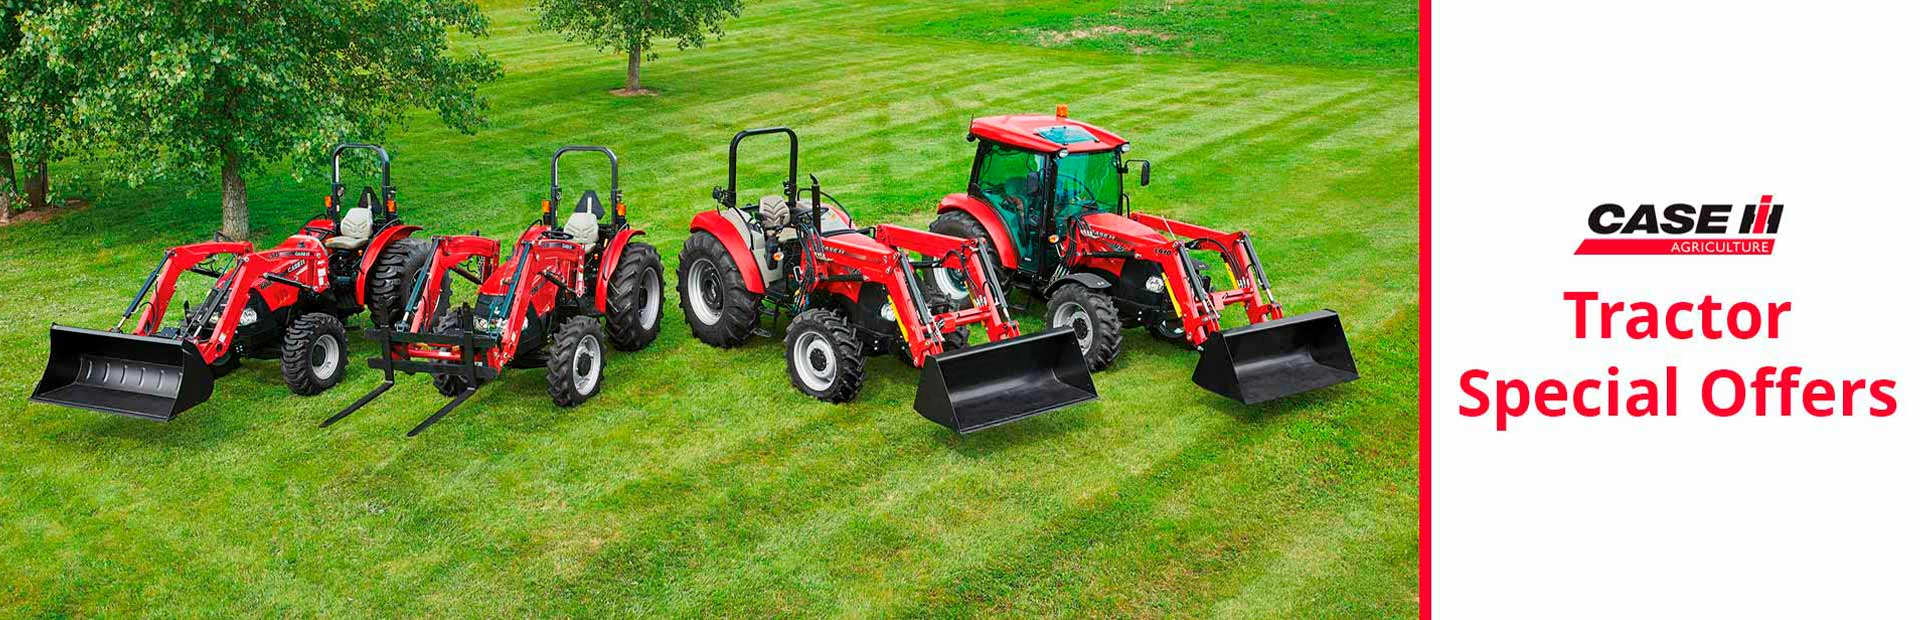 Case IH: Tractor Special Offers